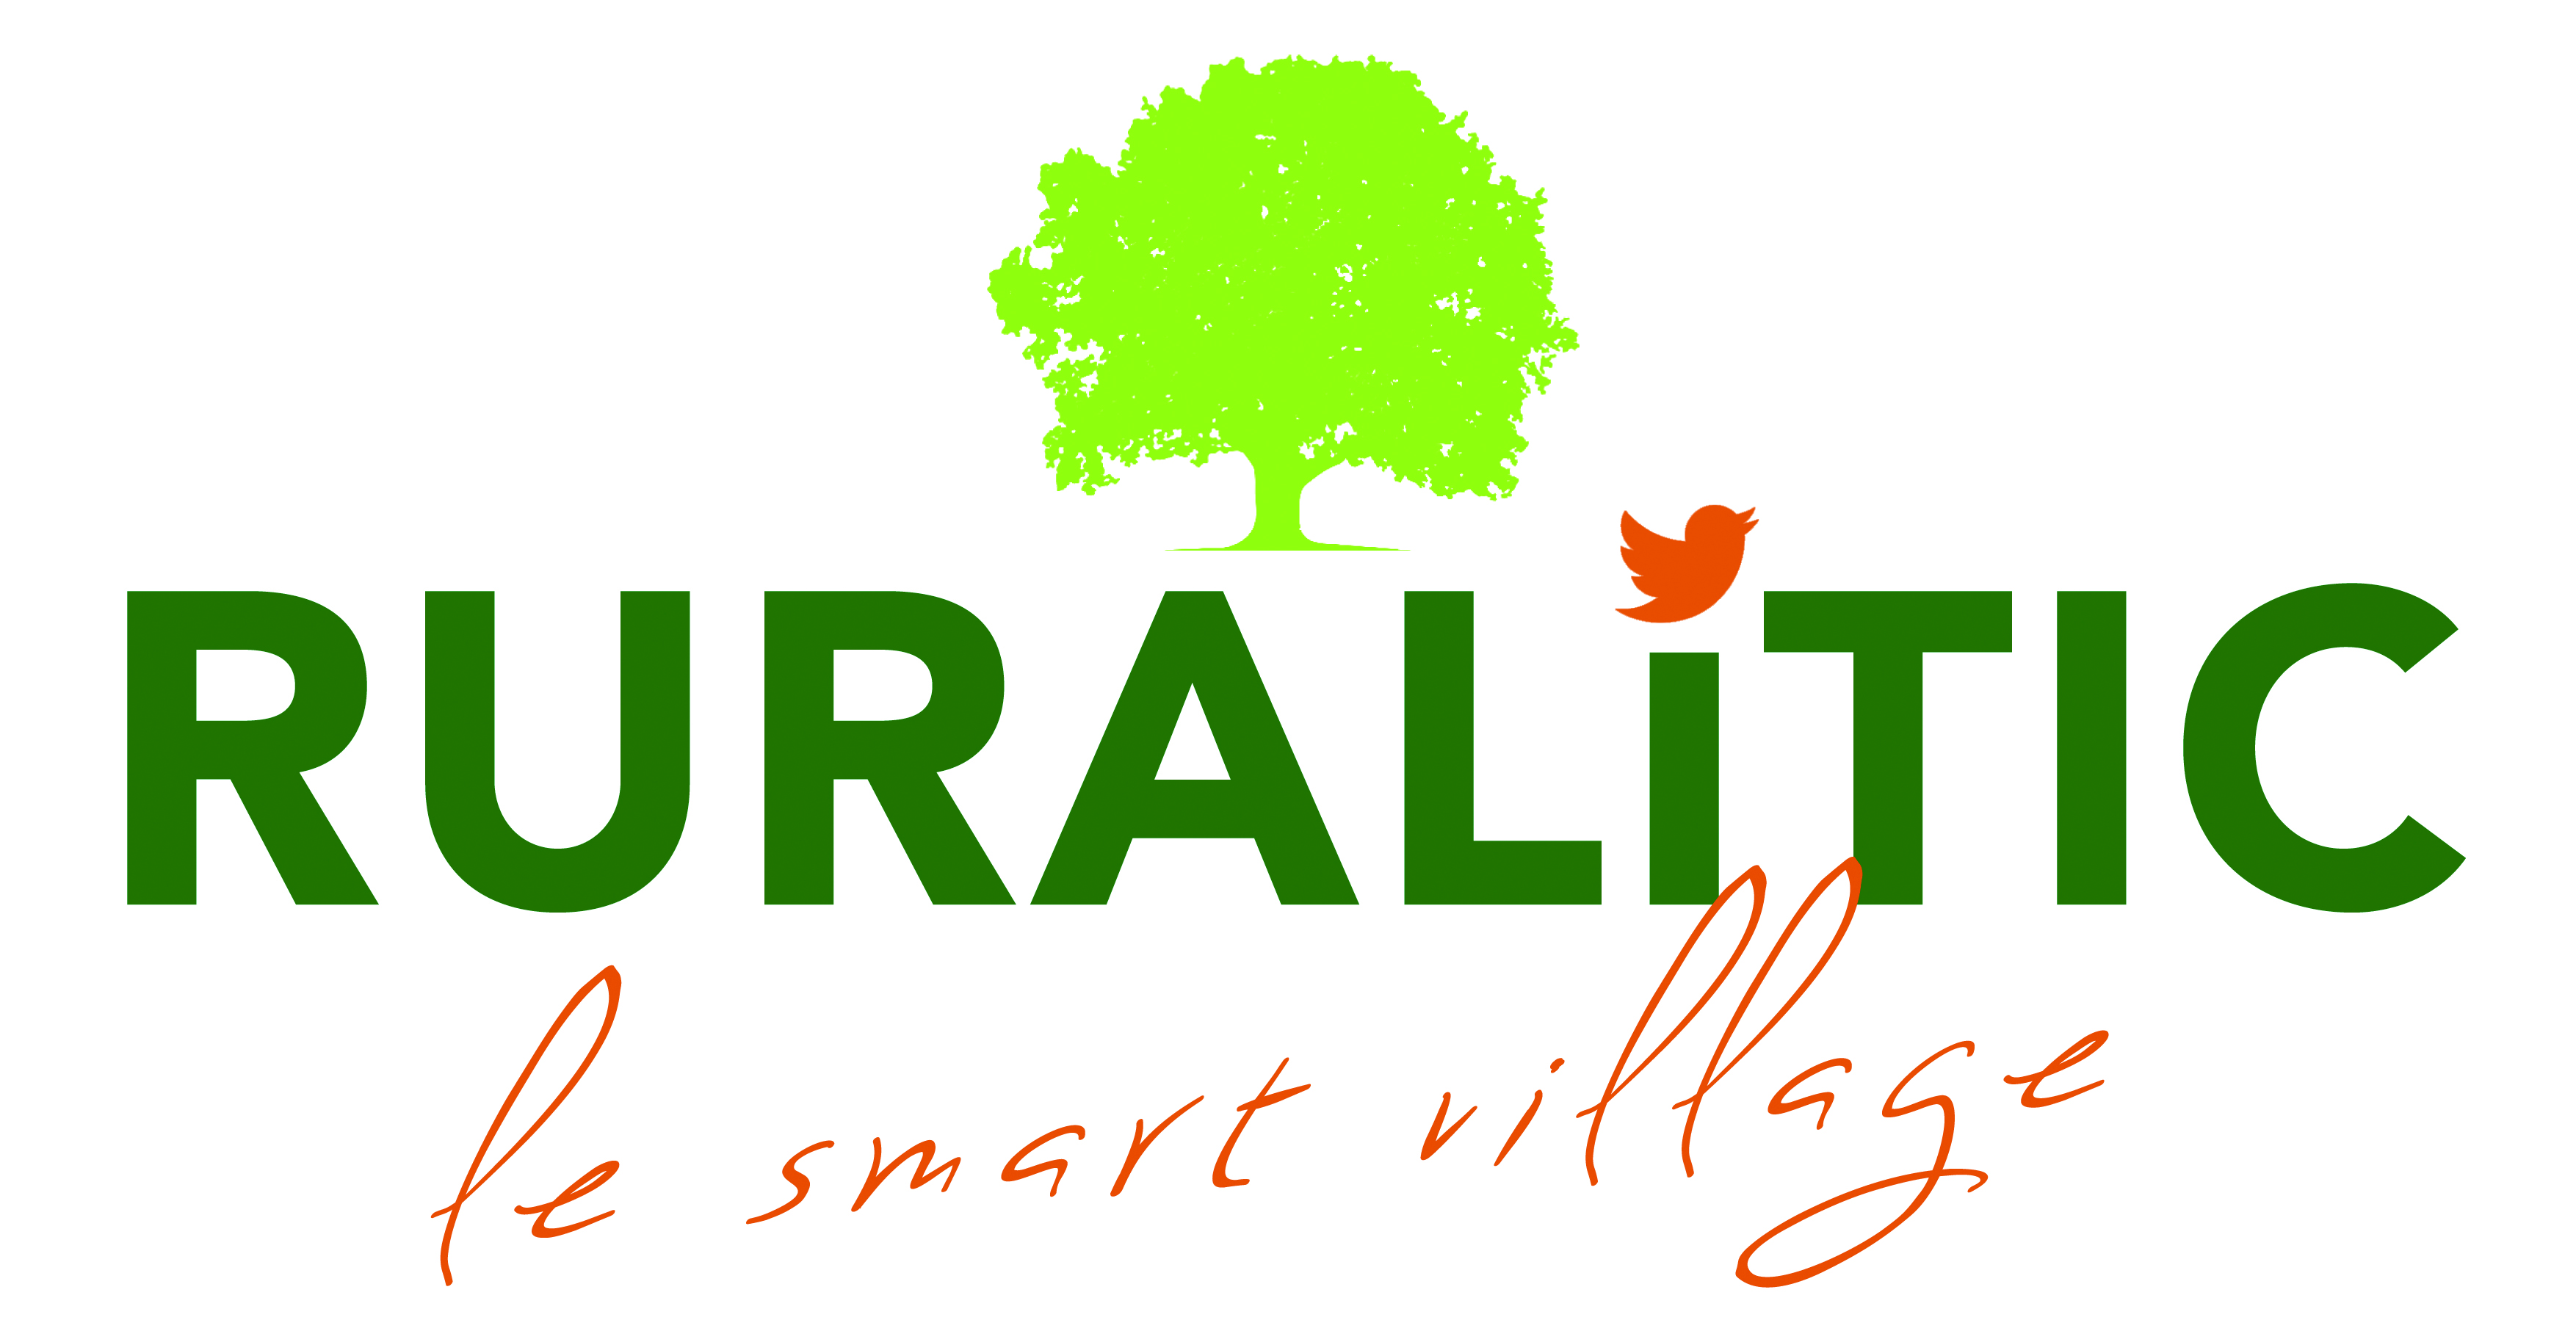 LE SMART VILLAGE RURALITIC